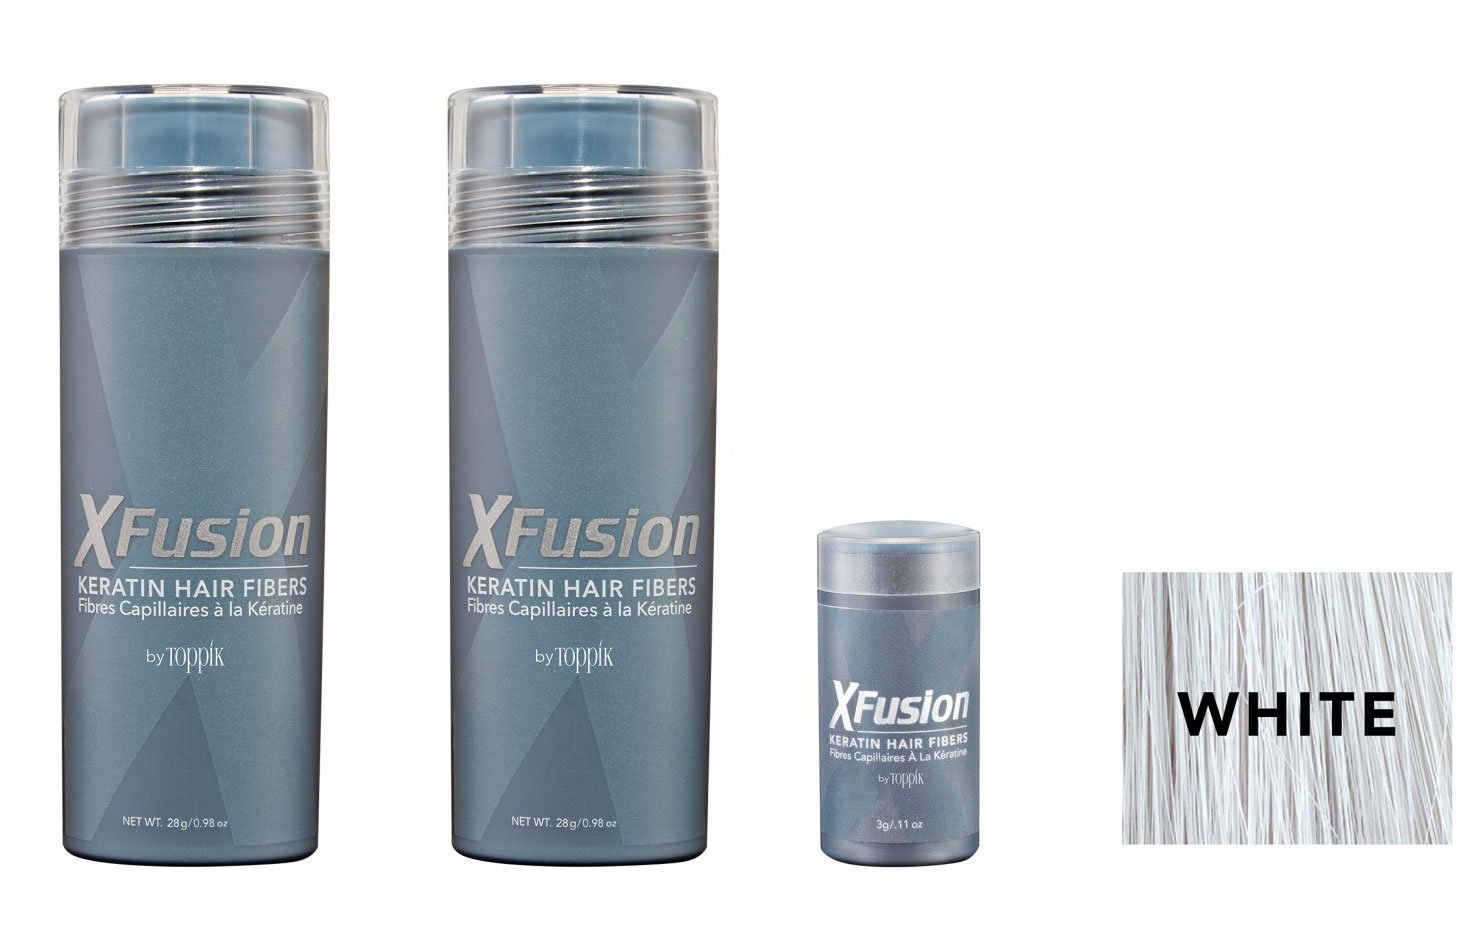 XFusion Keratin Hair Fibers,Two Pack Value 2 x 28 gr/0.98 oz WHITE/FREE Refillable 3 gr Travel Size Fibers ($8.00 Value) …